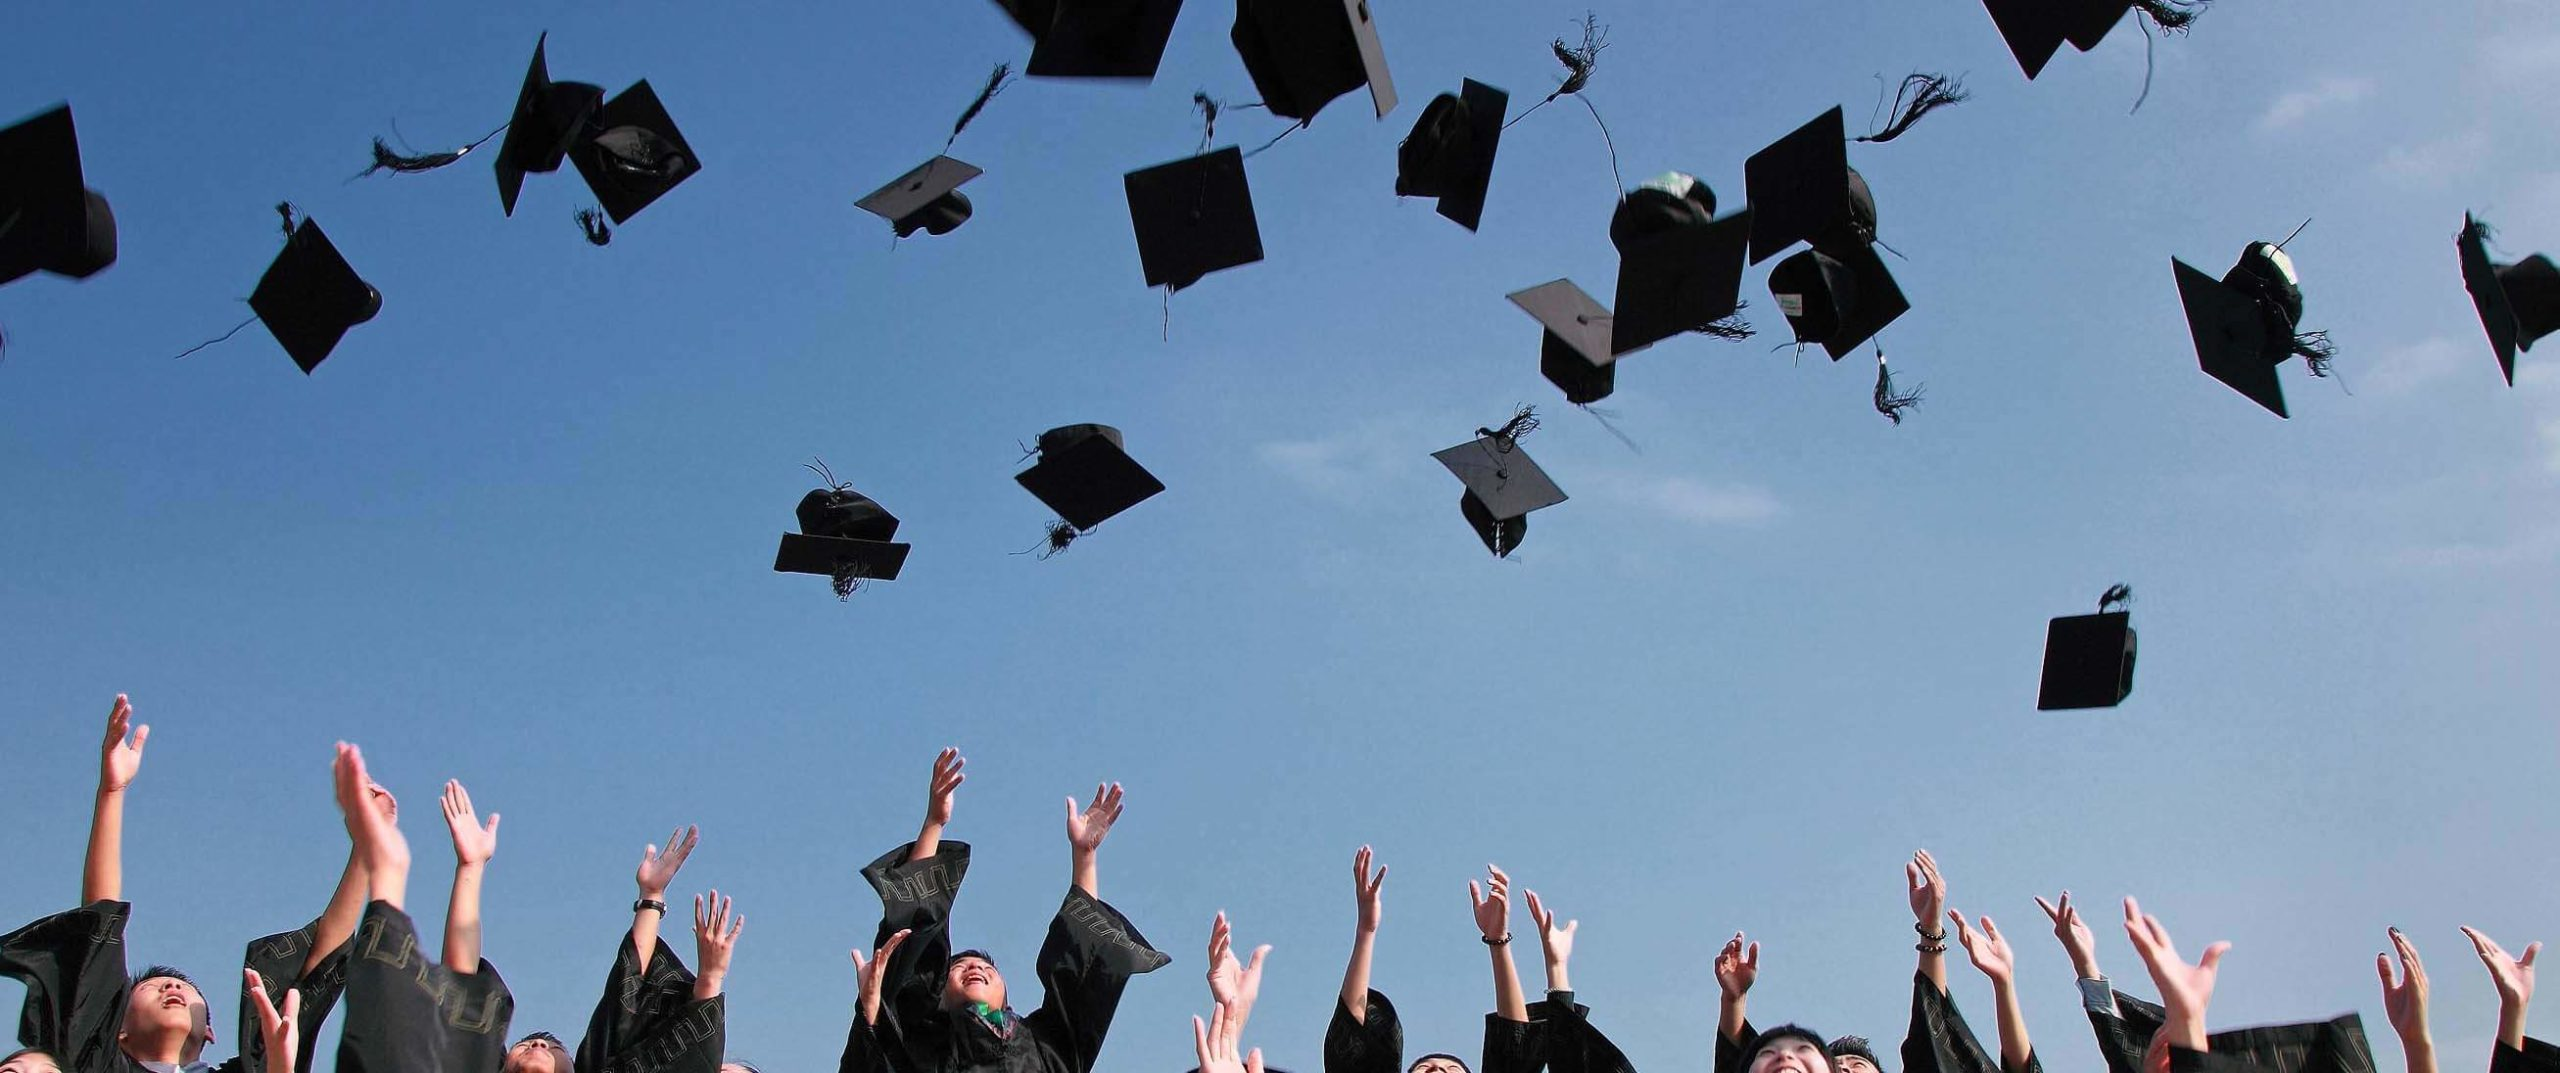 Class of Covid: The overlooked graduates of the class of 2020